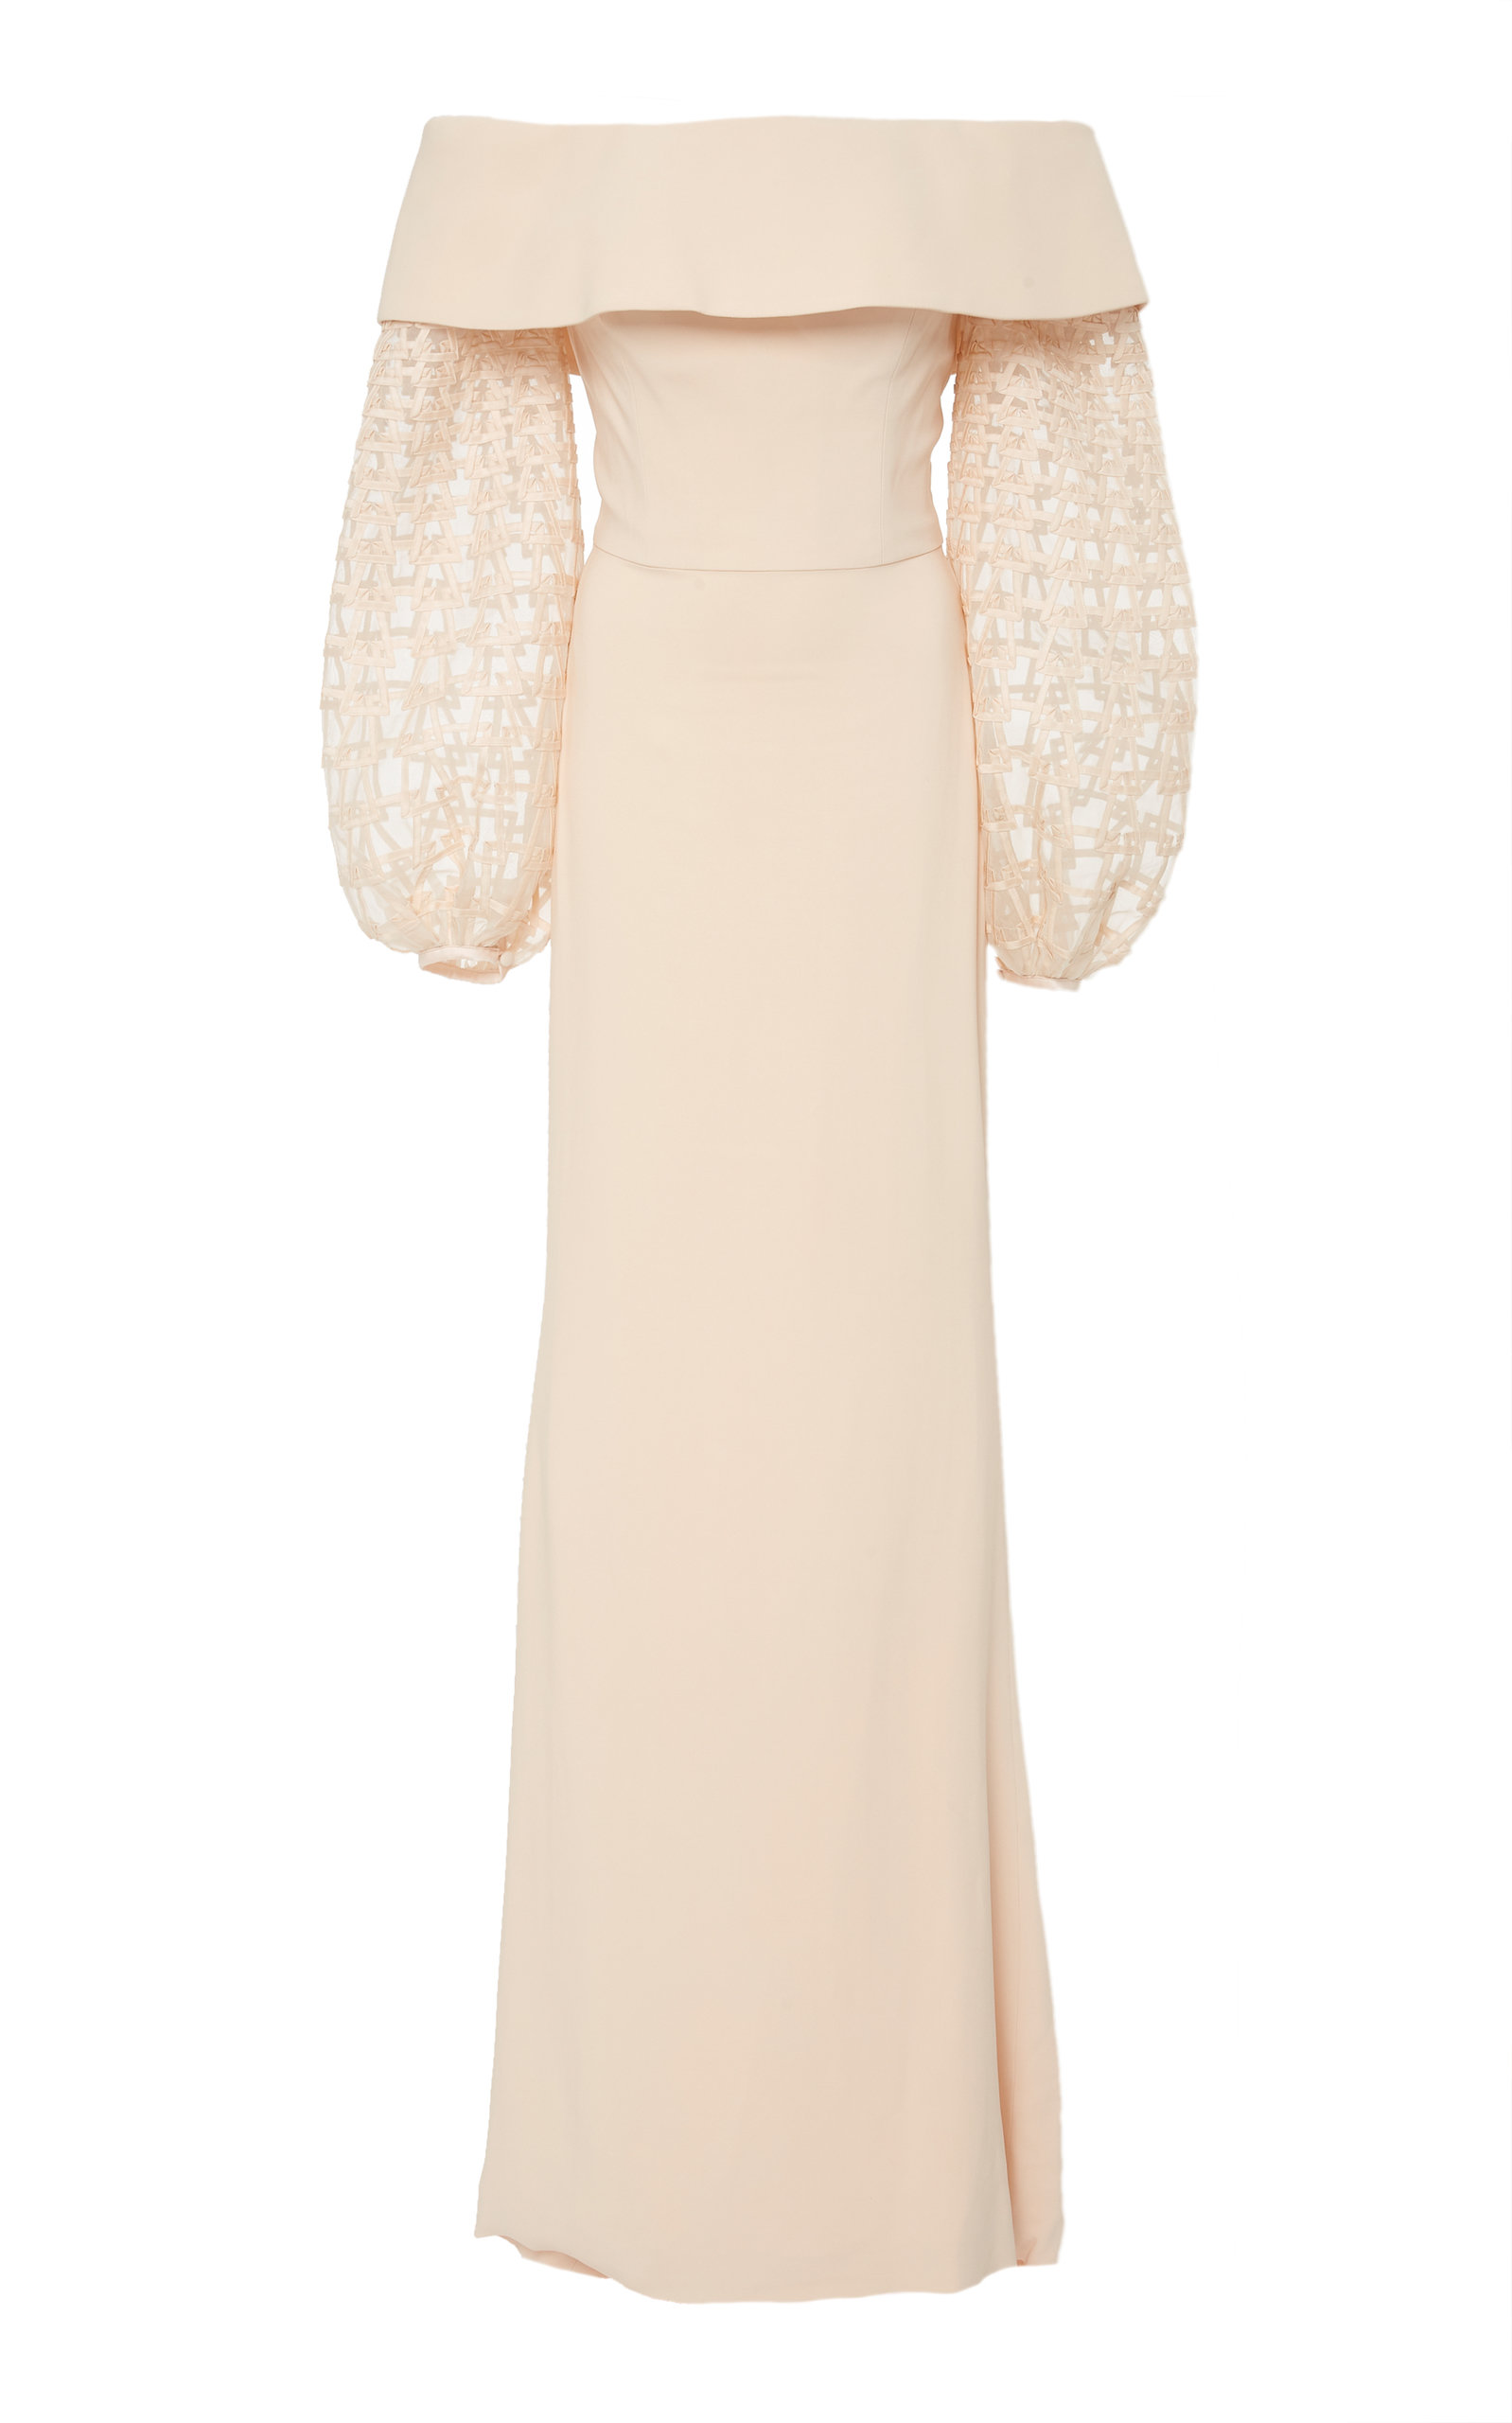 ELIZABETH KENNEDY M'O EXCLUSIVE OFF THE SHOULDER BALLOON SLEEVE GOWN